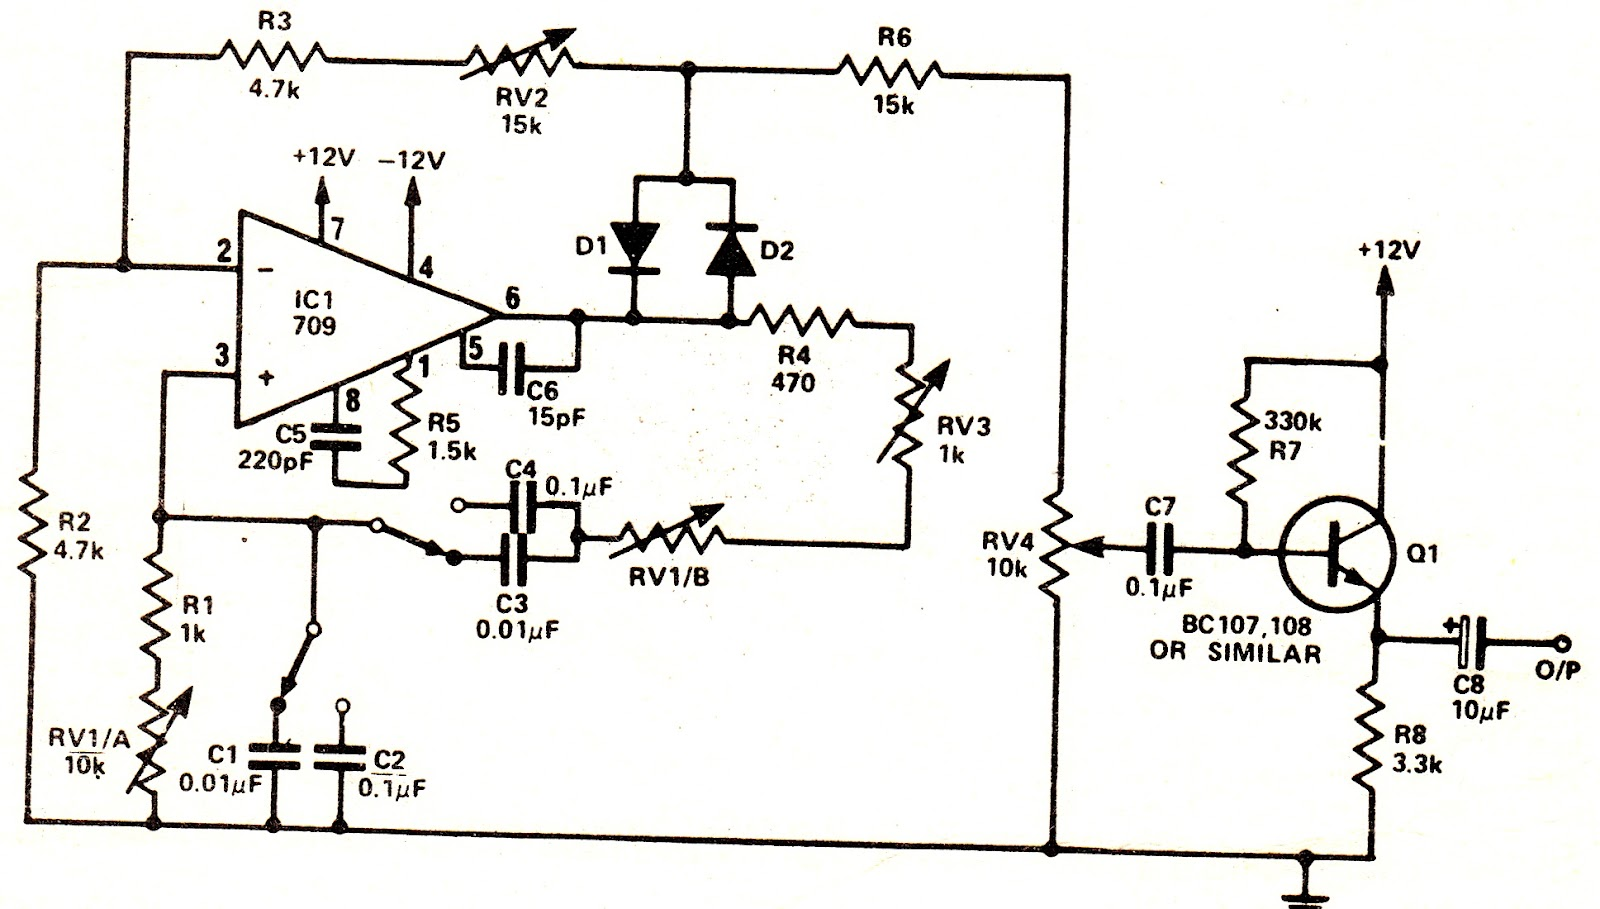 sine+wave+oscillator+circuit power acoustik wiring diagram cerwin vega wiring diagram wiring power acoustik wiring diagrams at bakdesigns.co